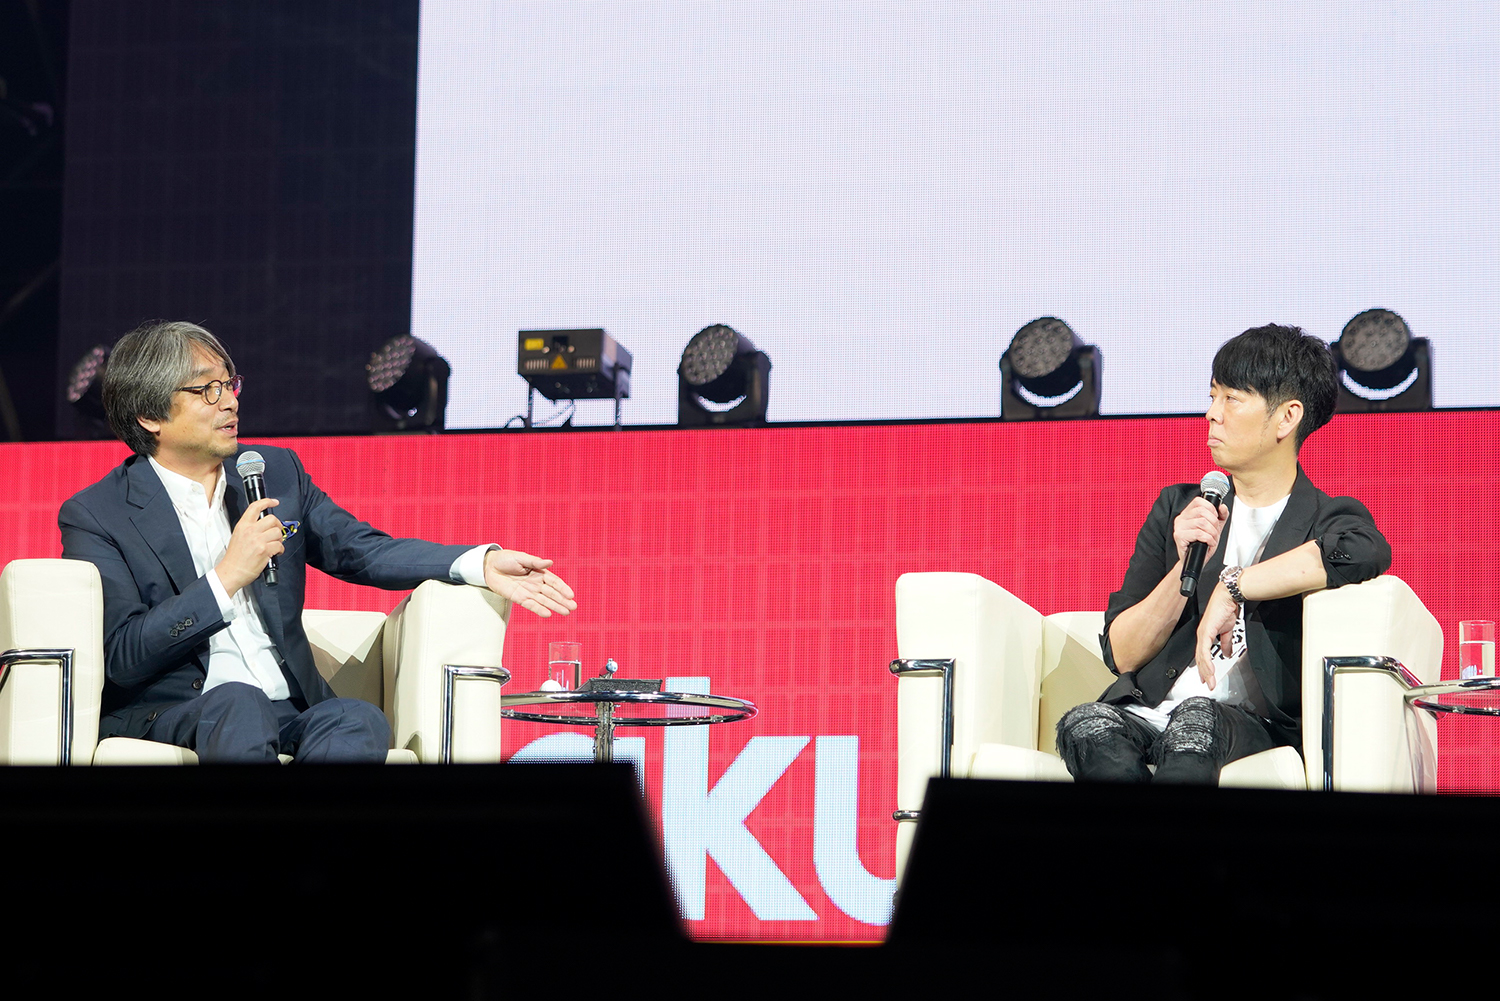 Two of Japan's most iconic creators, Kundo Koyama and Kashiwa Sato, shared the stage at Rakuten Optimism in Yokohama last month for a discussion on branding